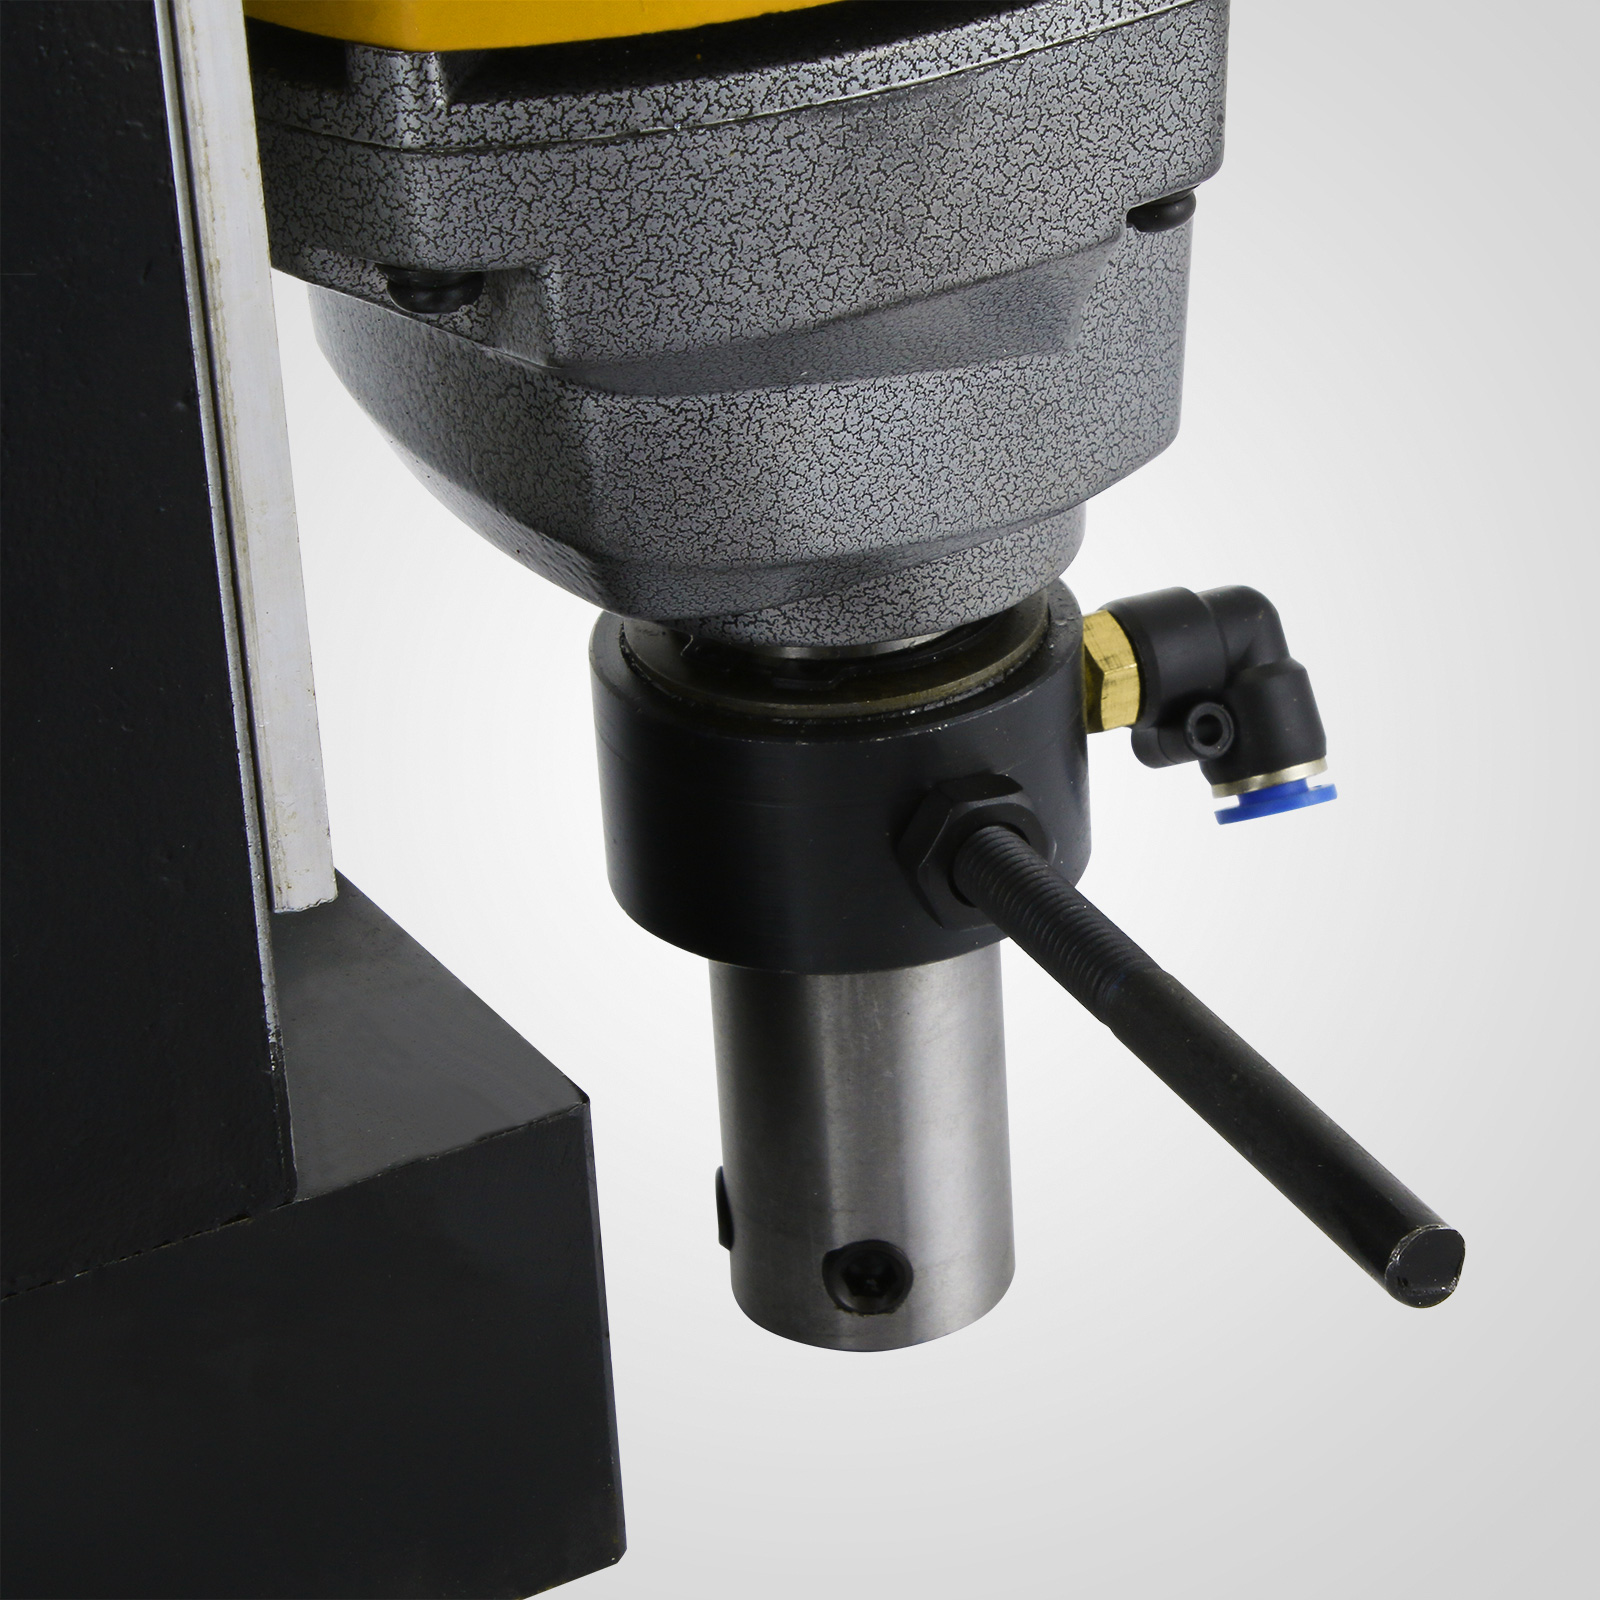 MD40 MAGNETIC DRILL PRESS TAPPING 1100W 2700 LBS MAGNET FORCE GREAT WISE CHOICE